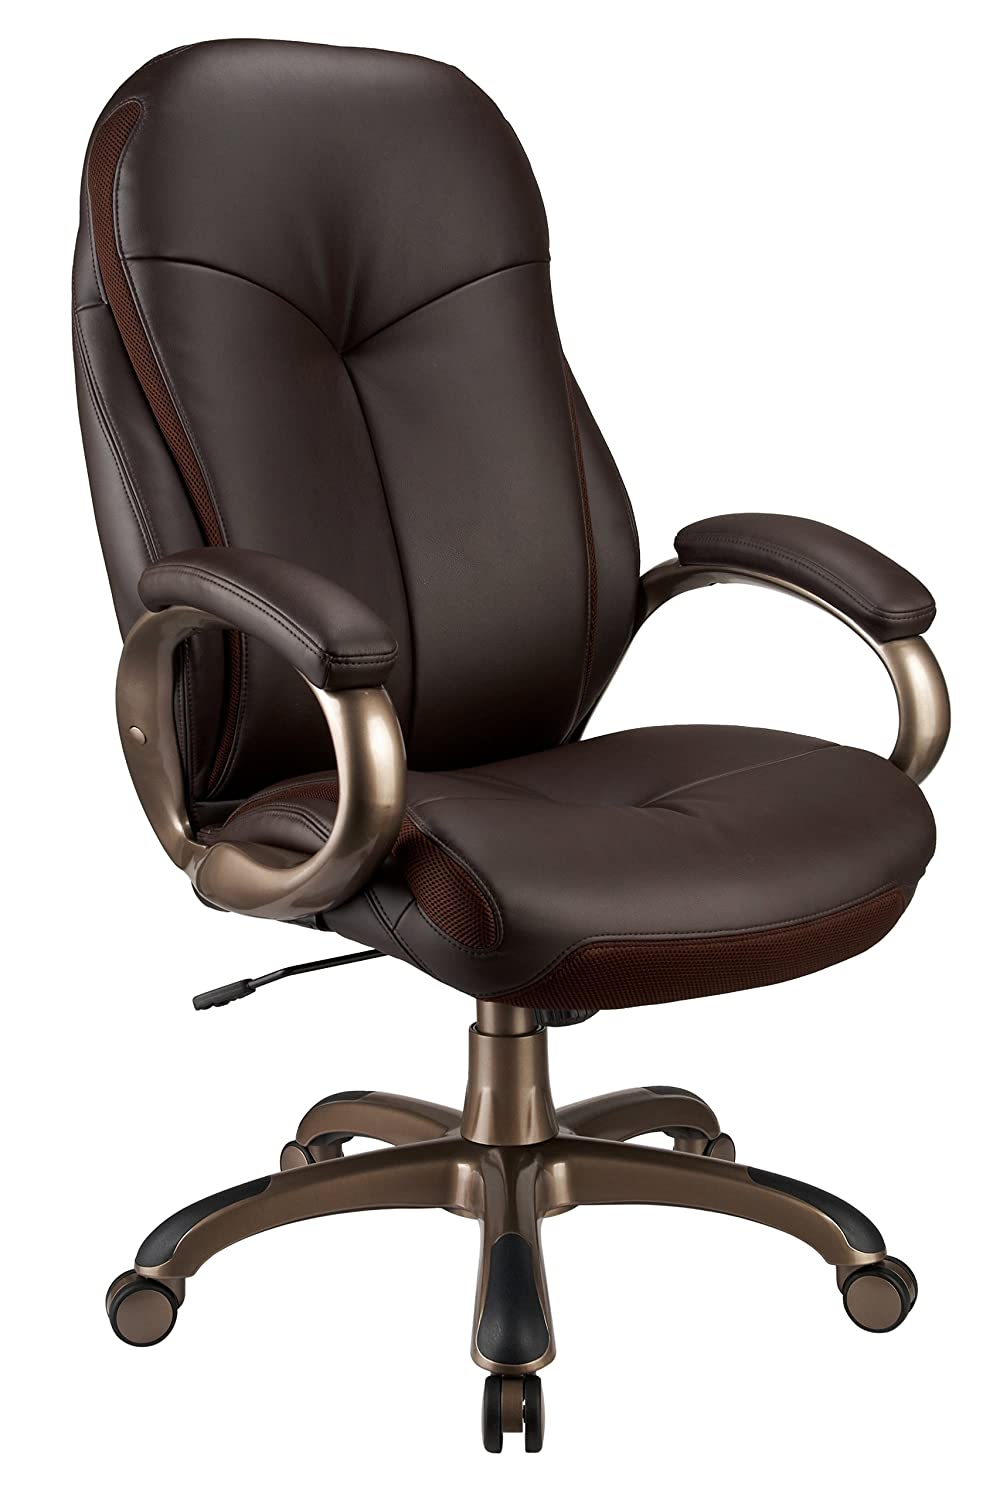 Office Star Executive Espresso Eco Leather Chair with Locking Tilt Control